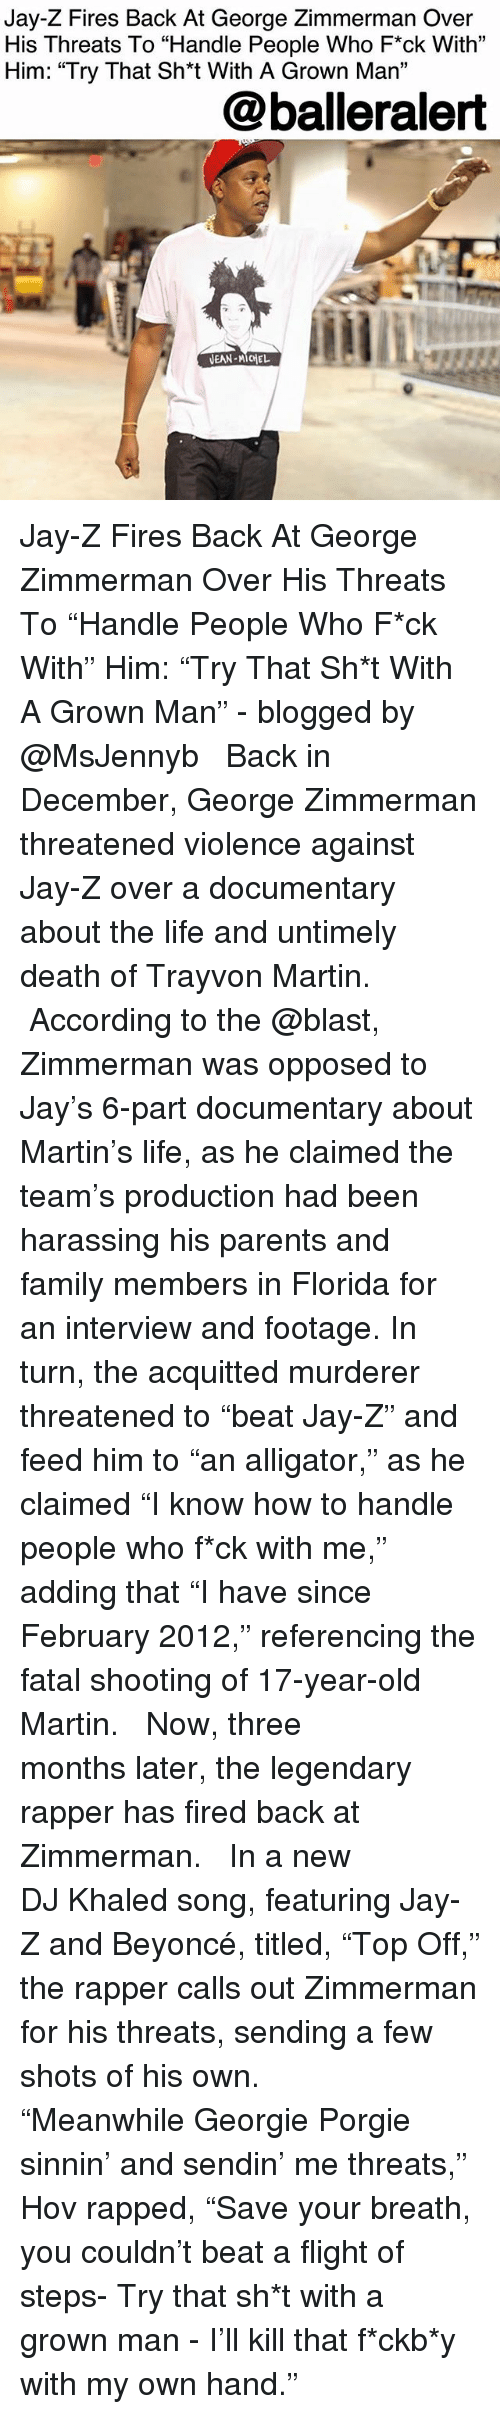 """rapped: Jay-Z Fires Back At George Zimmerman Over  His Threats To """"Handle People Who F*ck With""""  Him: """"Try That Sh*t With A Grown Ma""""  31  @balleralert Jay-Z Fires Back At George Zimmerman Over His Threats To """"Handle People Who F*ck With"""" Him: """"Try That Sh*t With A Grown Man"""" - blogged by @MsJennyb ⠀⠀⠀⠀⠀⠀⠀ ⠀⠀⠀⠀⠀⠀⠀ Back in December, George Zimmerman threatened violence against Jay-Z over a documentary about the life and untimely death of Trayvon Martin. ⠀⠀⠀⠀⠀⠀⠀ ⠀⠀⠀⠀⠀⠀⠀ According to the @blast, Zimmerman was opposed to Jay's 6-part documentary about Martin's life, as he claimed the team's production had been harassing his parents and family members in Florida for an interview and footage. In turn, the acquitted murderer threatened to """"beat Jay-Z"""" and feed him to """"an alligator,"""" as he claimed """"I know how to handle people who f*ck with me,"""" adding that """"I have since February 2012,"""" referencing the fatal shooting of 17-year-old Martin. ⠀⠀⠀⠀⠀⠀⠀ ⠀⠀⠀⠀⠀⠀⠀ Now, three months later, the legendary rapper has fired back at Zimmerman. ⠀⠀⠀⠀⠀⠀⠀ ⠀⠀⠀⠀⠀⠀⠀ In a new DJ Khaled song, featuring Jay-Z and Beyoncé, titled, """"Top Off,"""" the rapper calls out Zimmerman for his threats, sending a few shots of his own. ⠀⠀⠀⠀⠀⠀⠀ ⠀⠀⠀⠀⠀⠀⠀ """"Meanwhile Georgie Porgie sinnin' and sendin' me threats,"""" Hov rapped, """"Save your breath, you couldn't beat a flight of steps- Try that sh*t with a grown man - I'll kill that f*ckb*y with my own hand."""""""